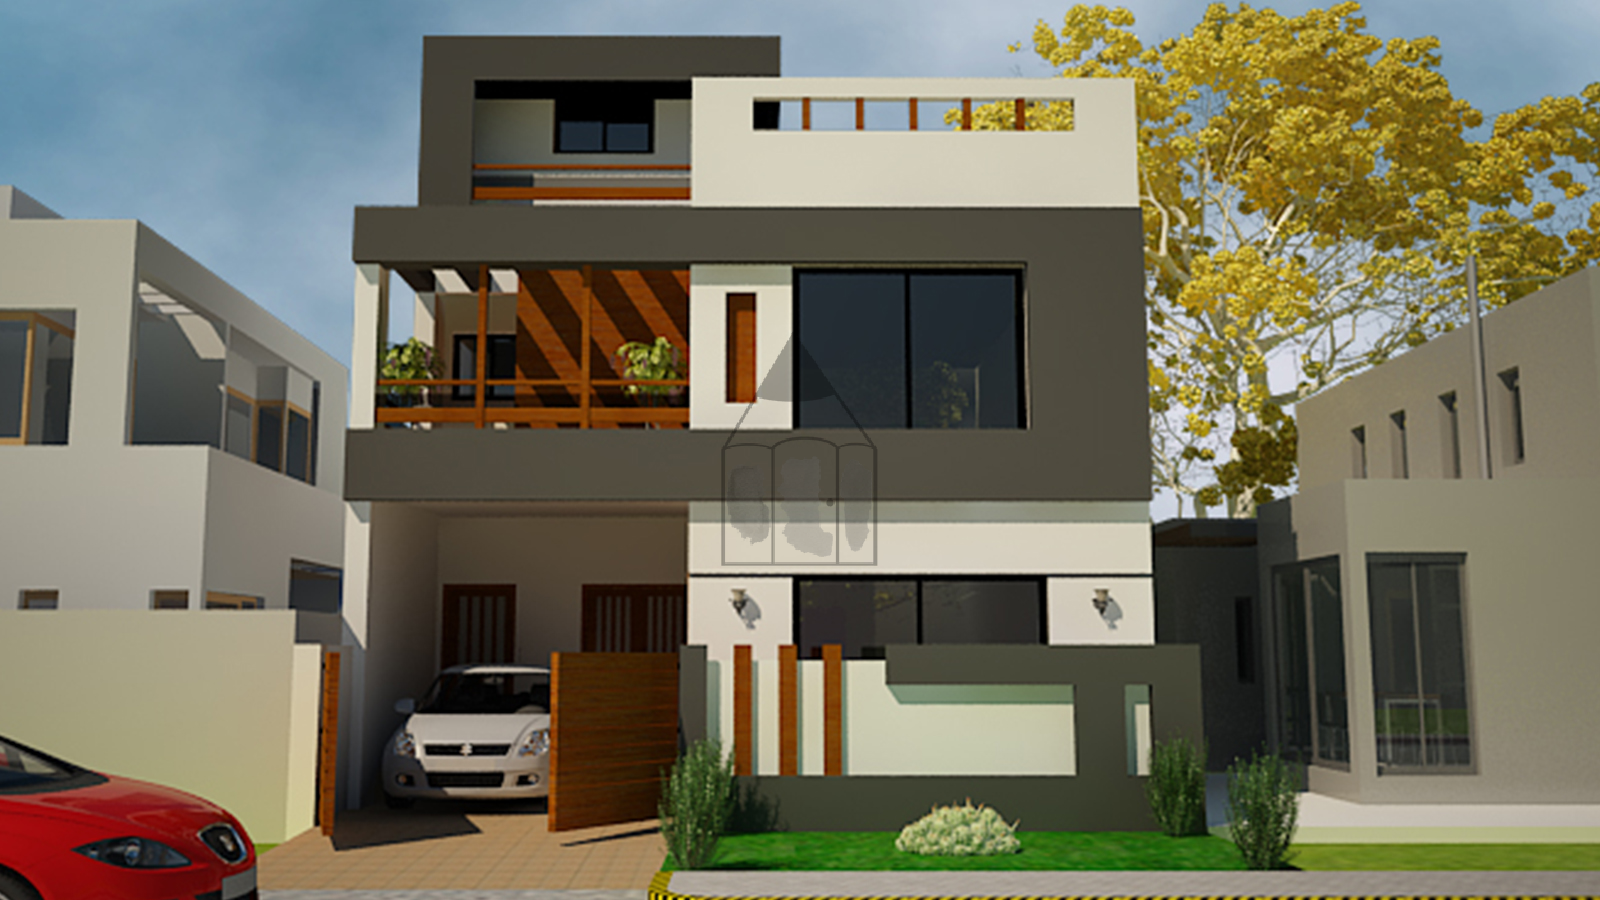 5 marla house front design ashfaq for Front design of small house